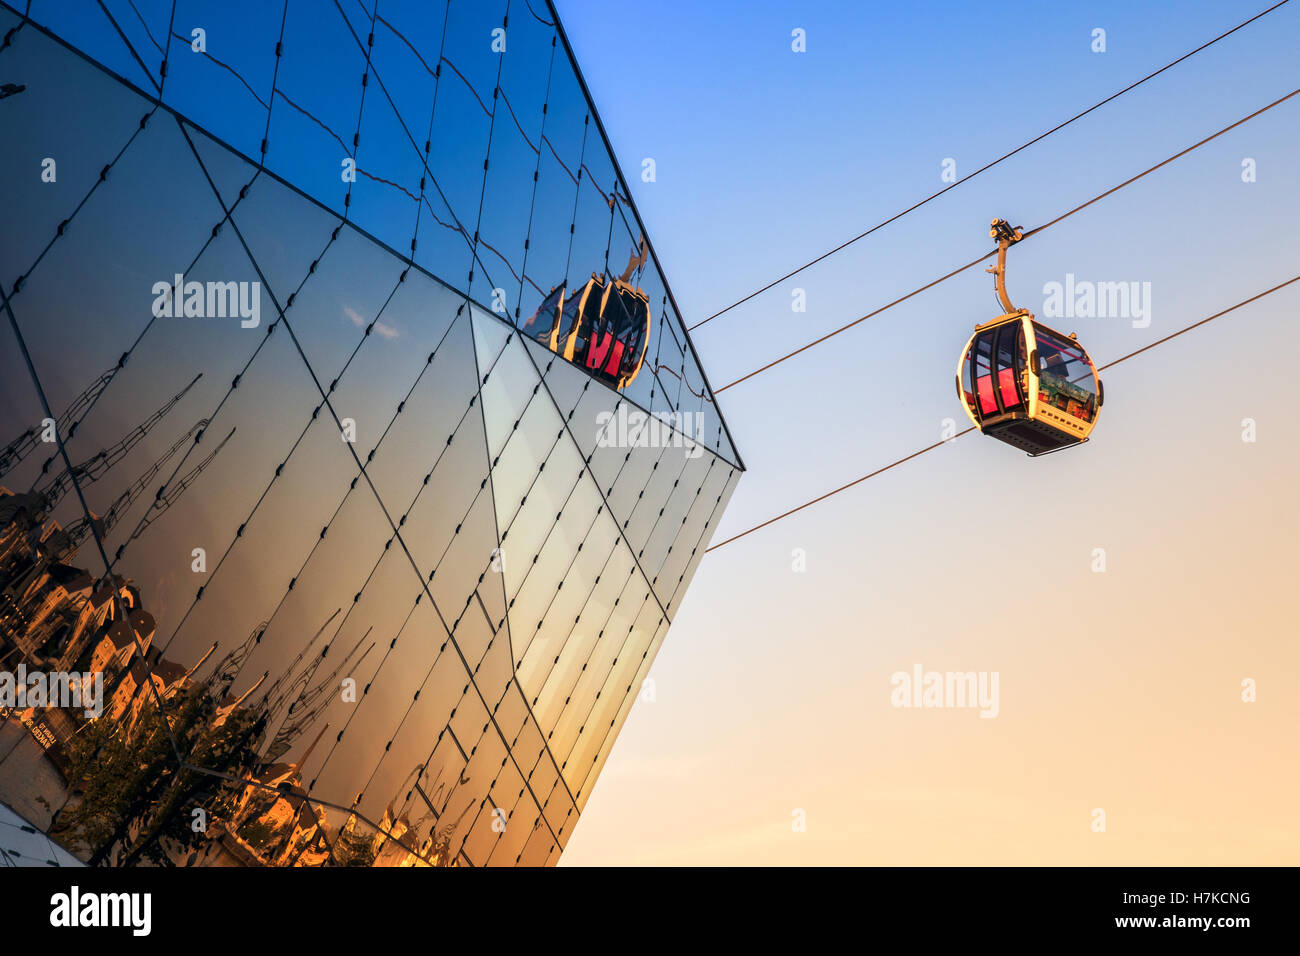 Thames cable car in London at sunset - Stock Image